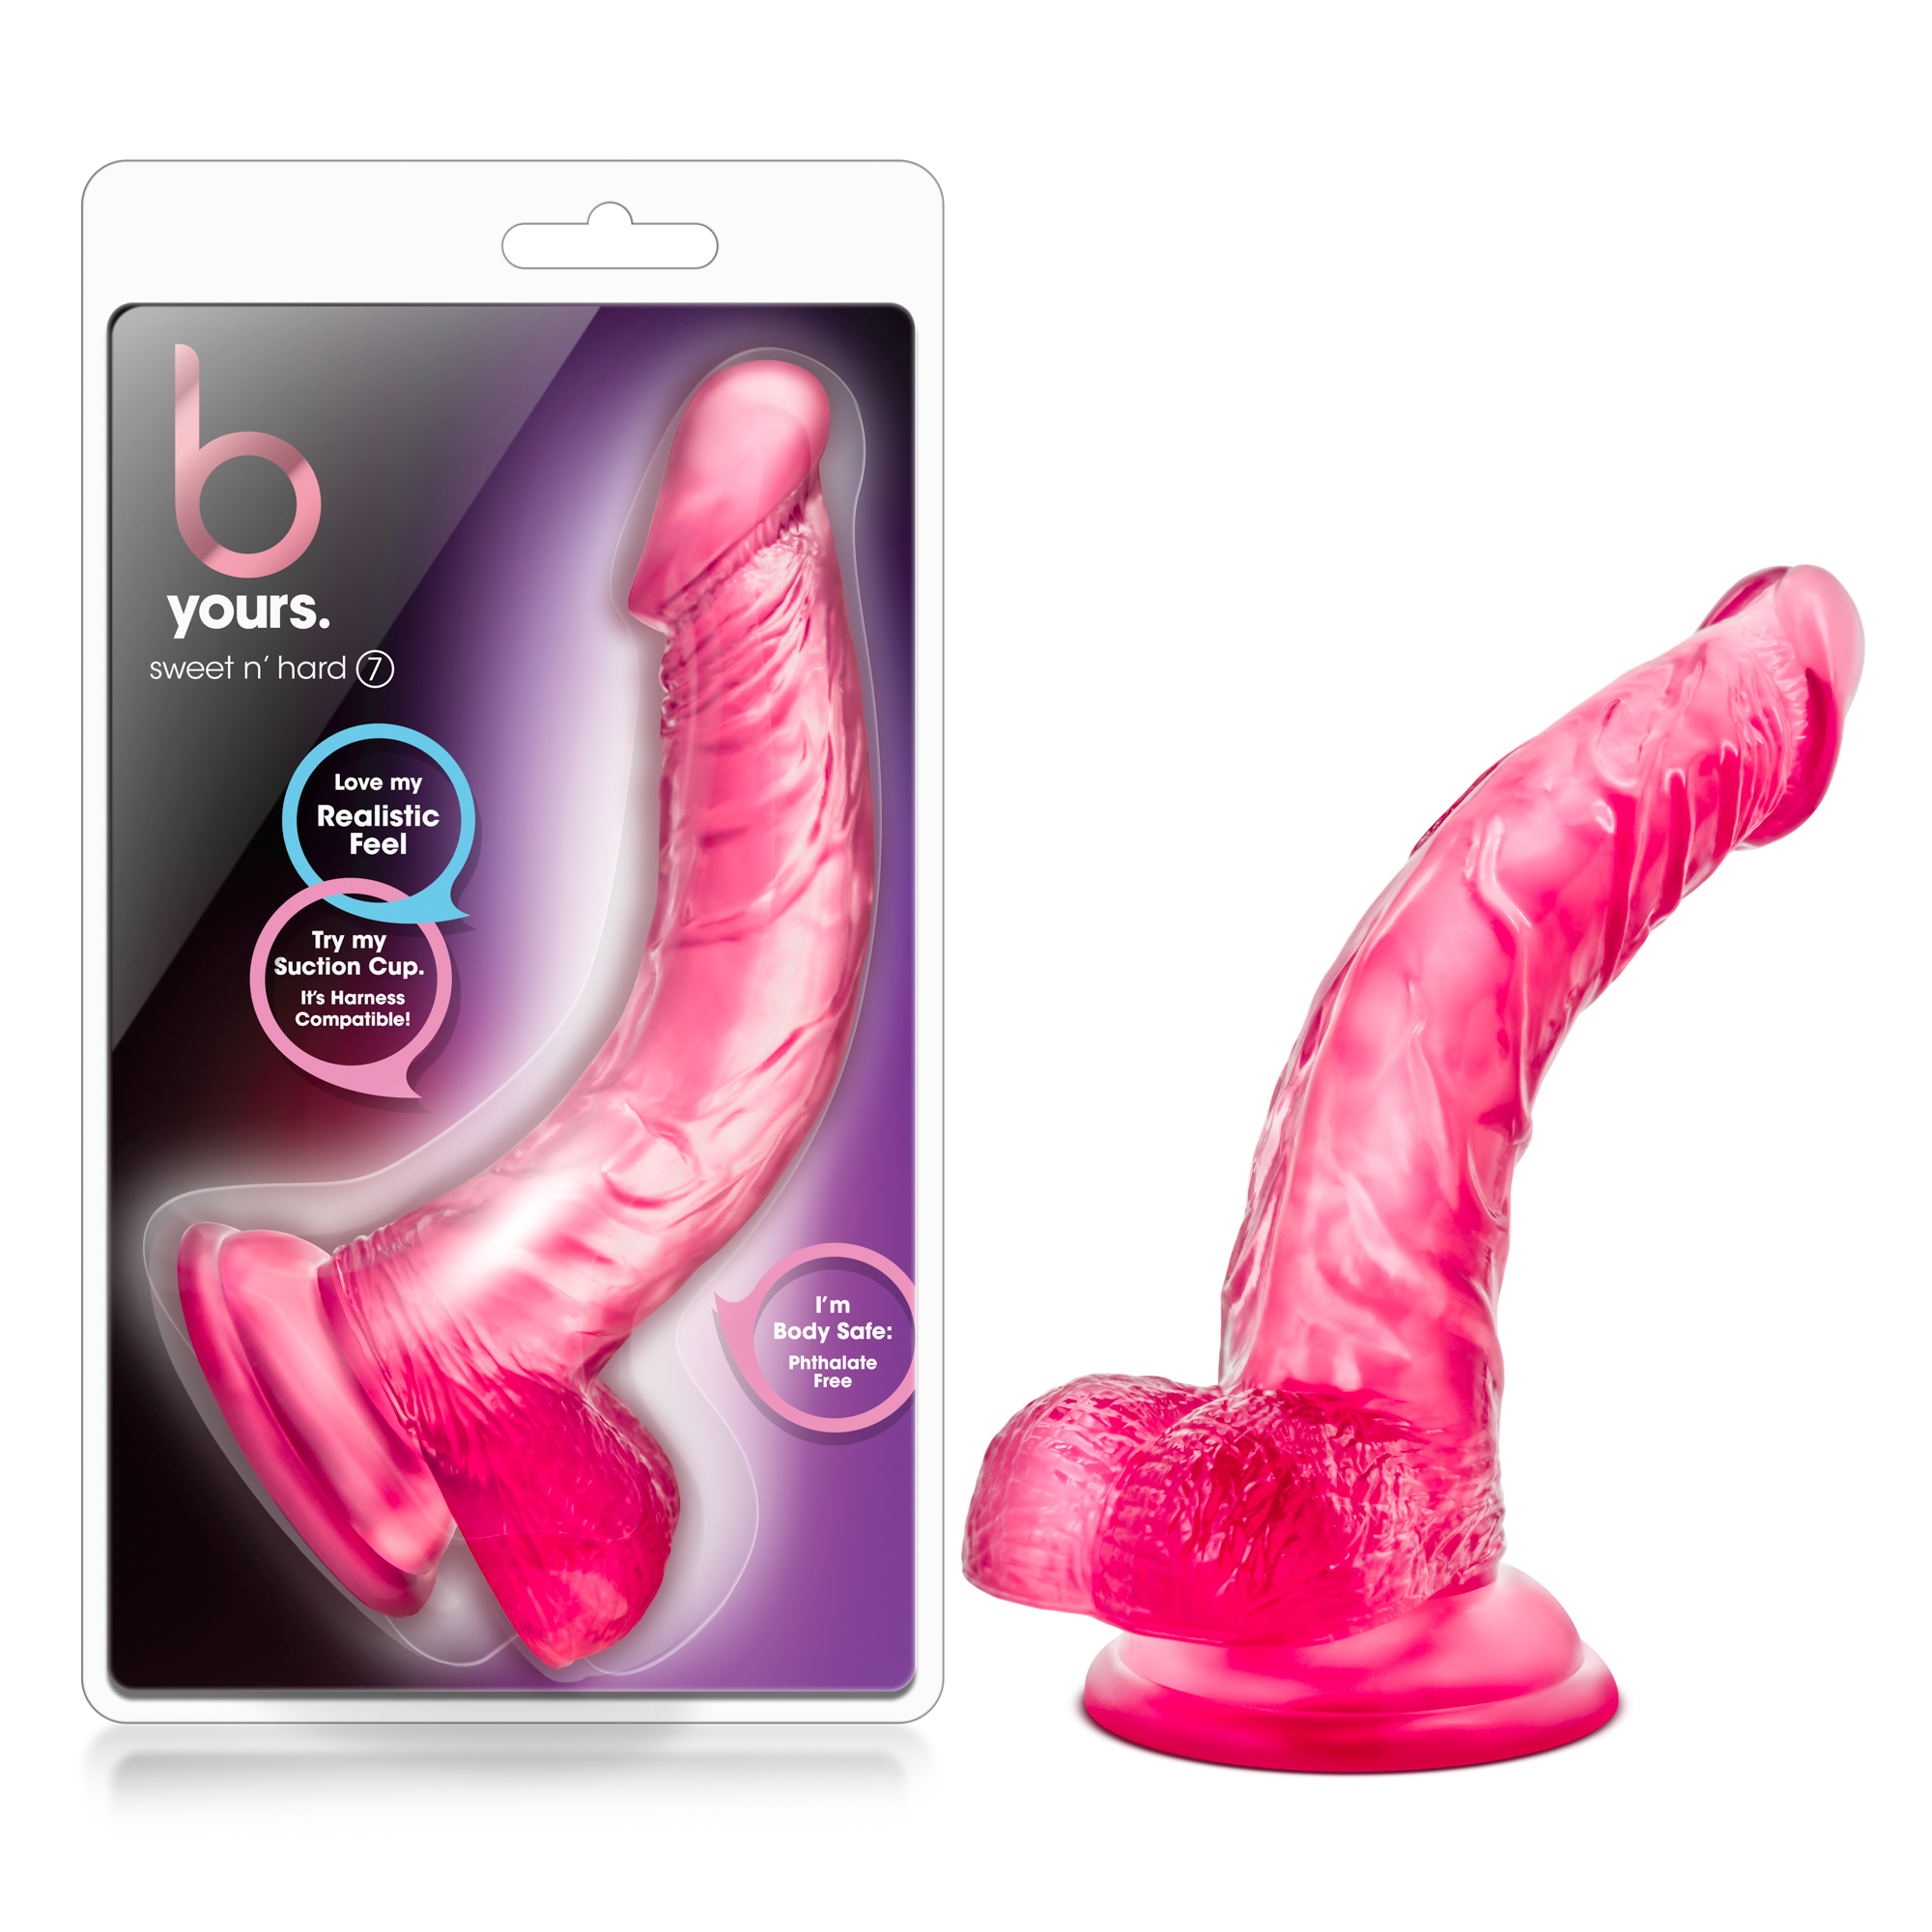 B Yours - Sweet n' Hard 7 - Pink